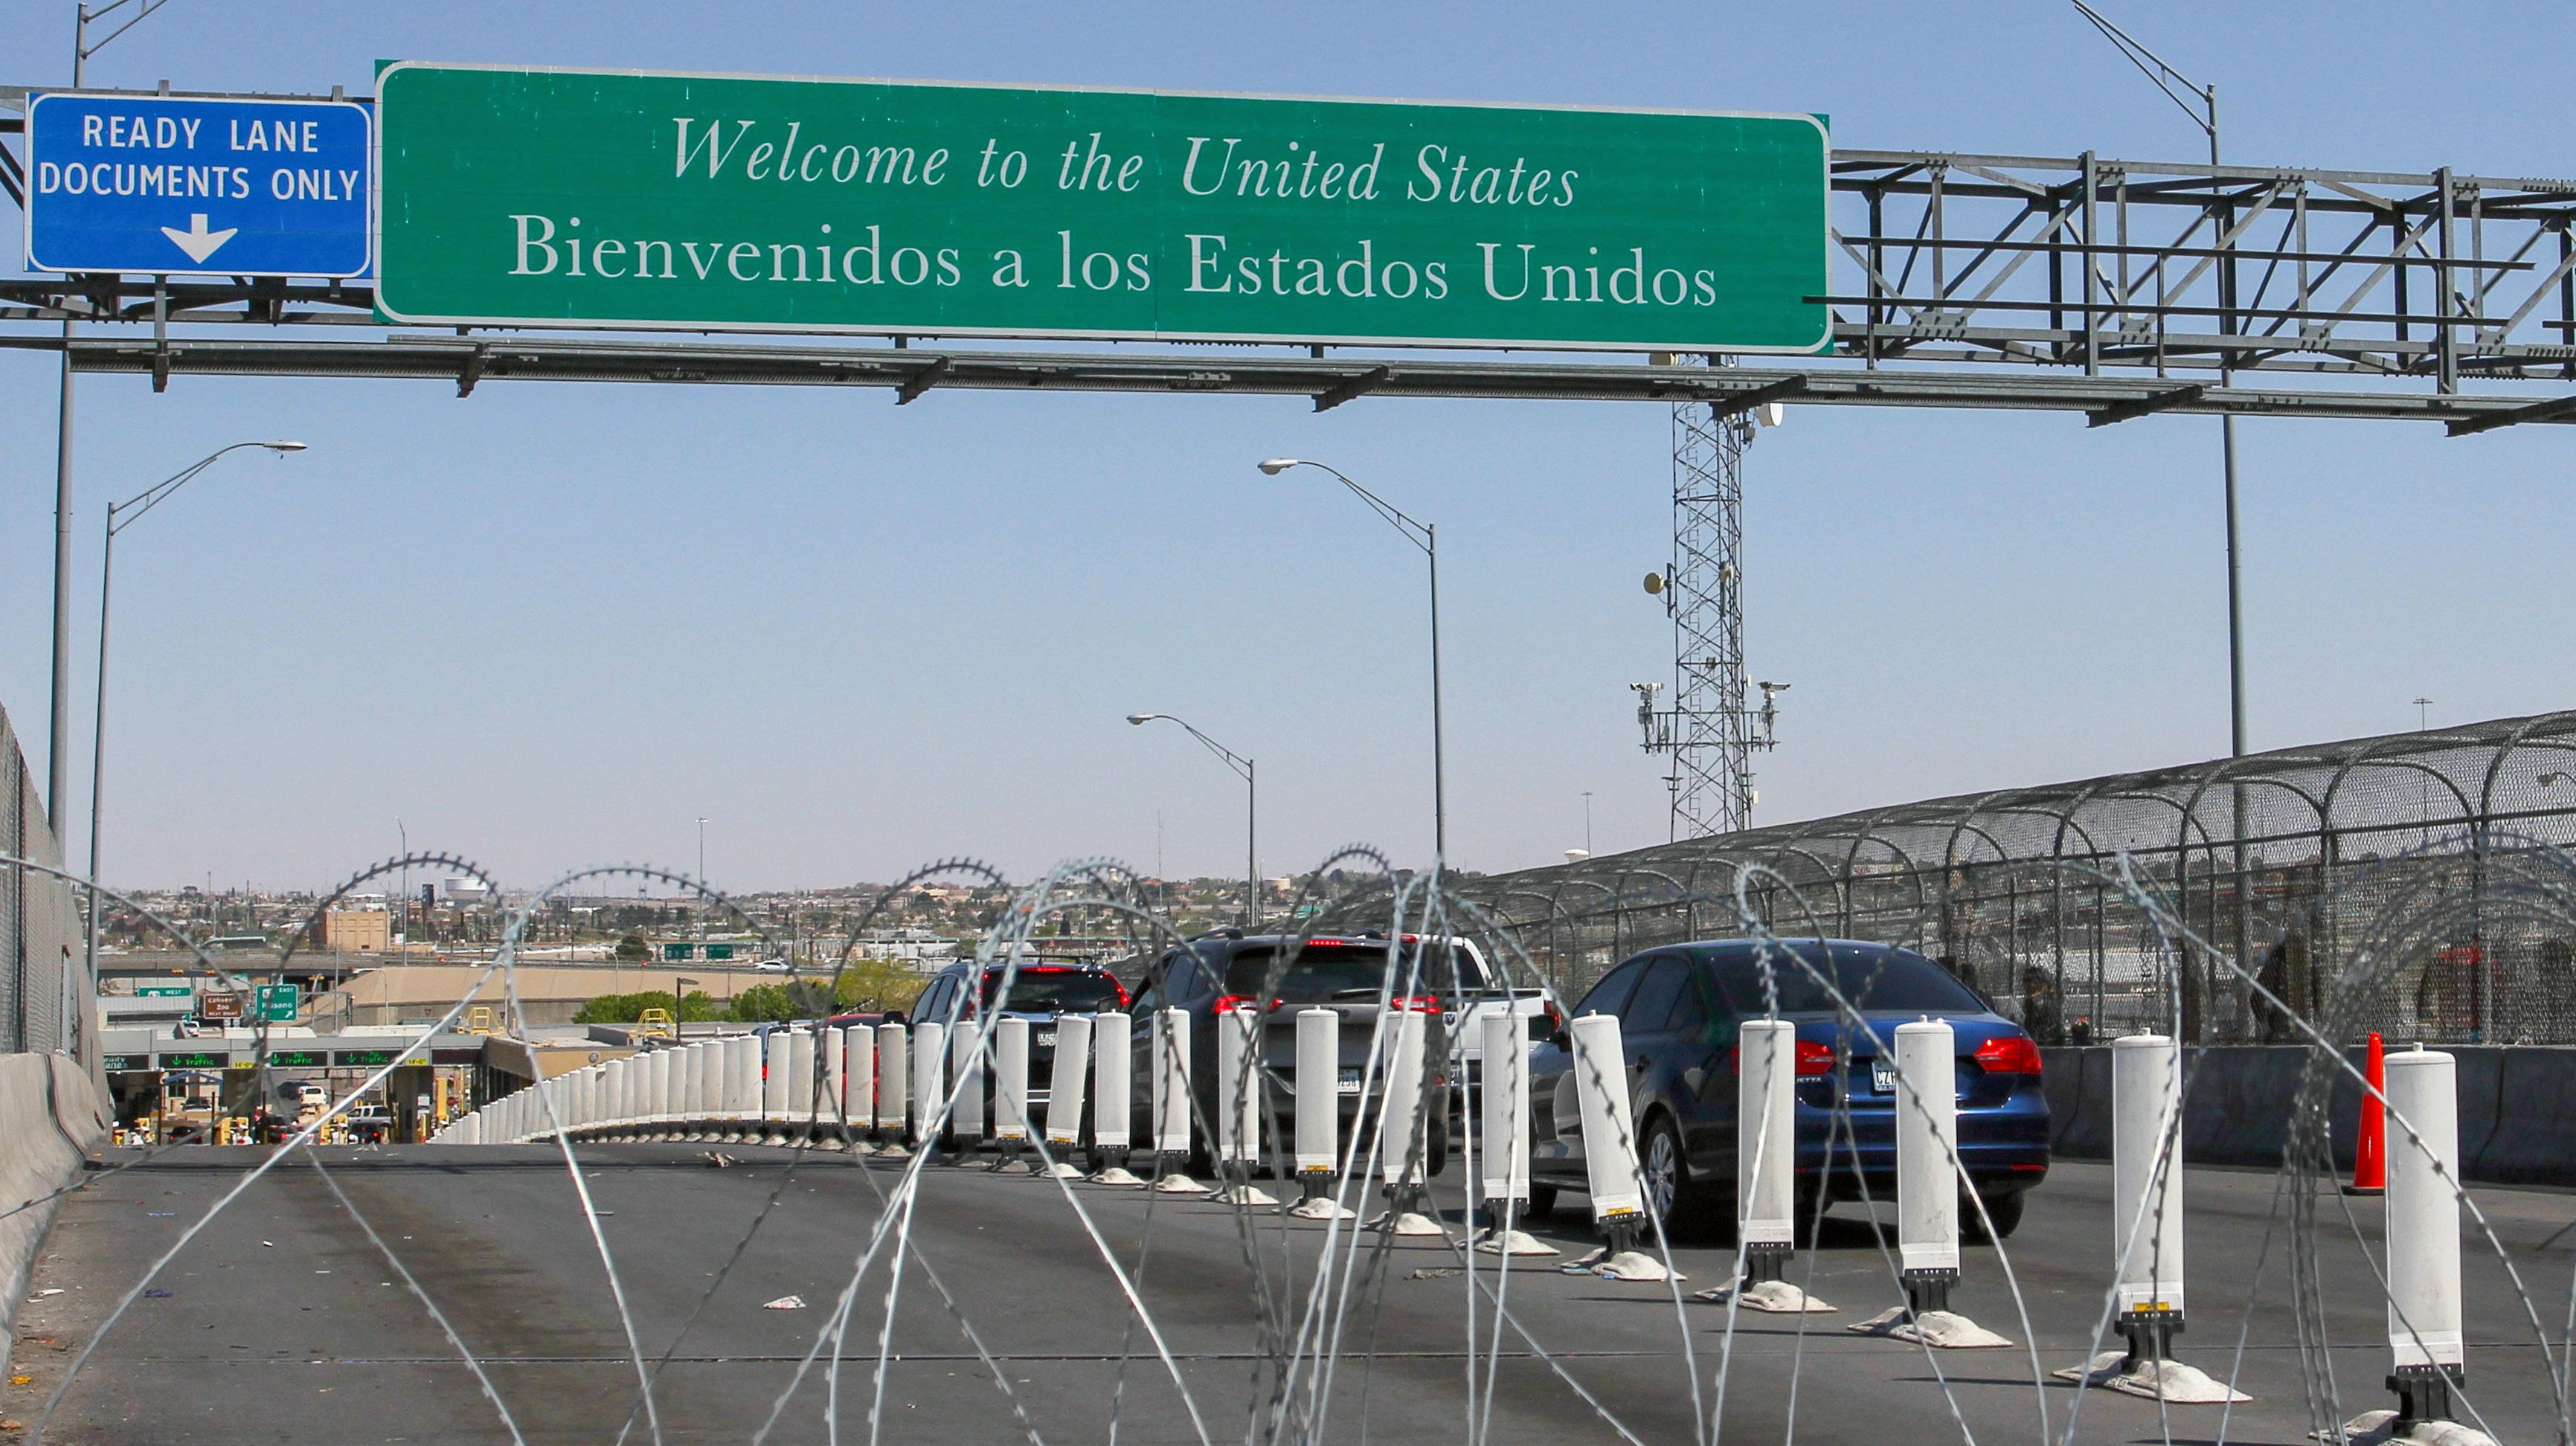 Court Rules That U.S. Border Agents Need Probable Cause To Search Travellers' Phones